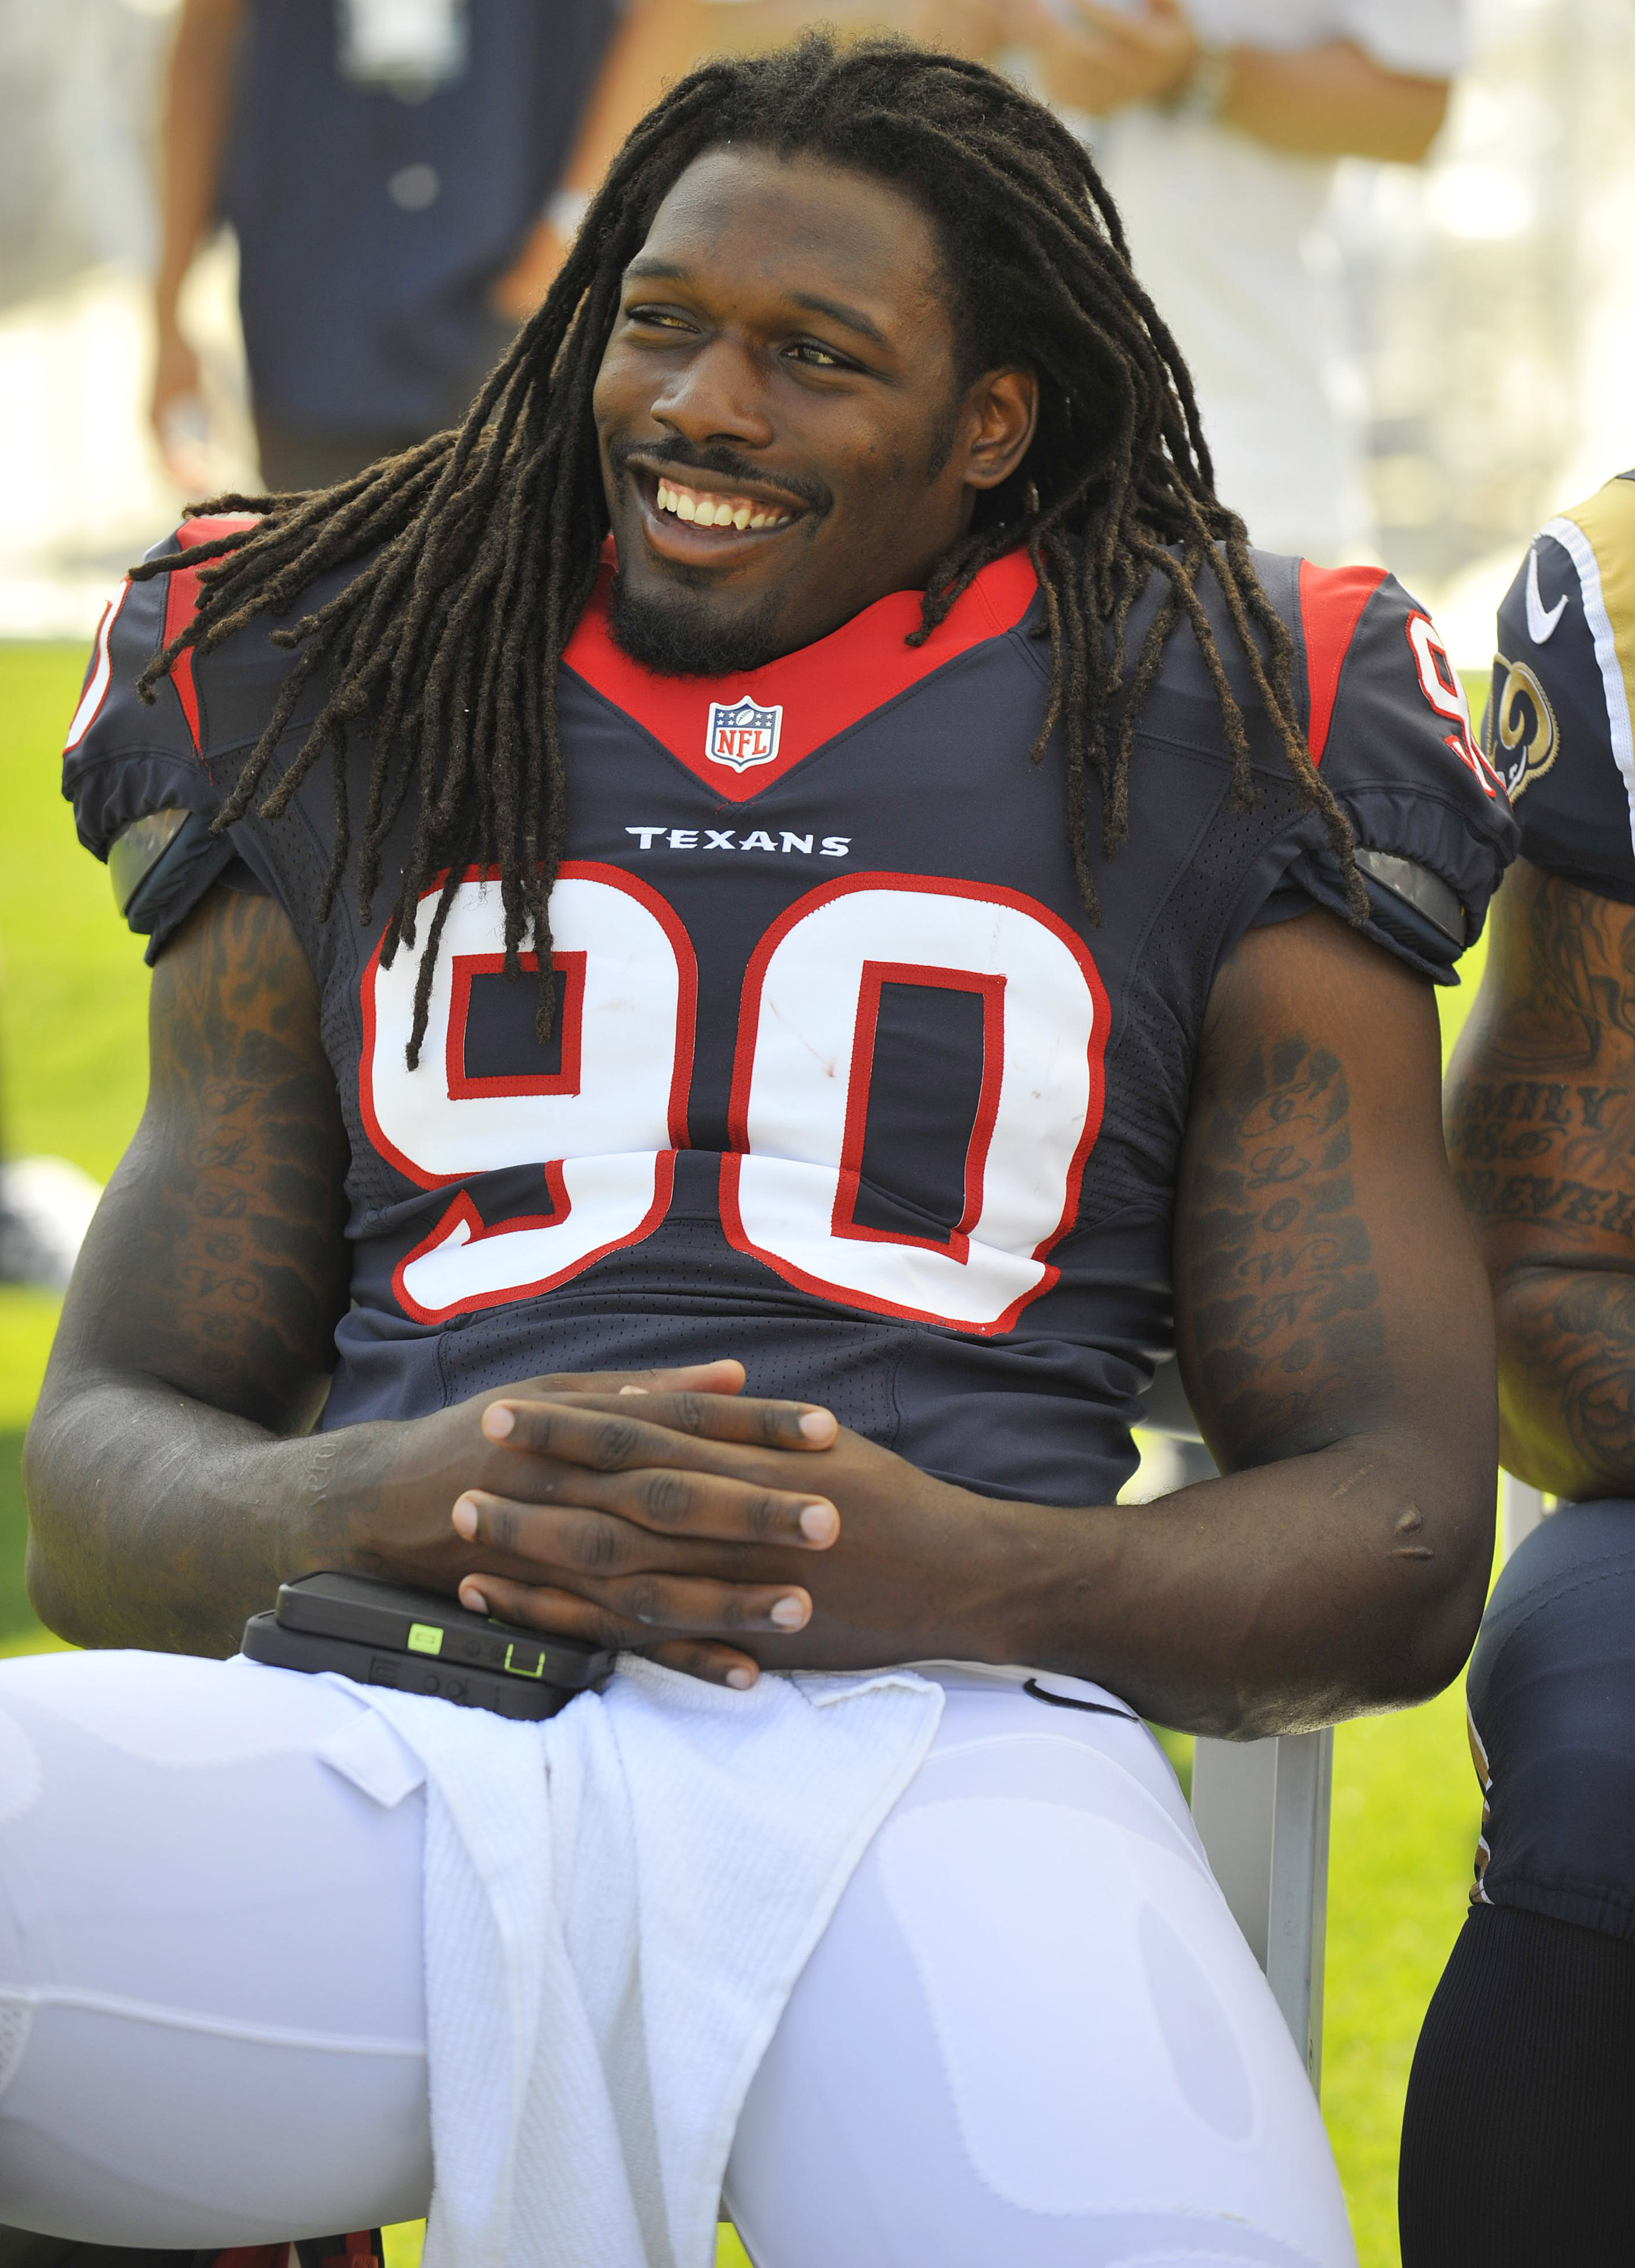 Jadeveon Clowney spares RB from massive hit